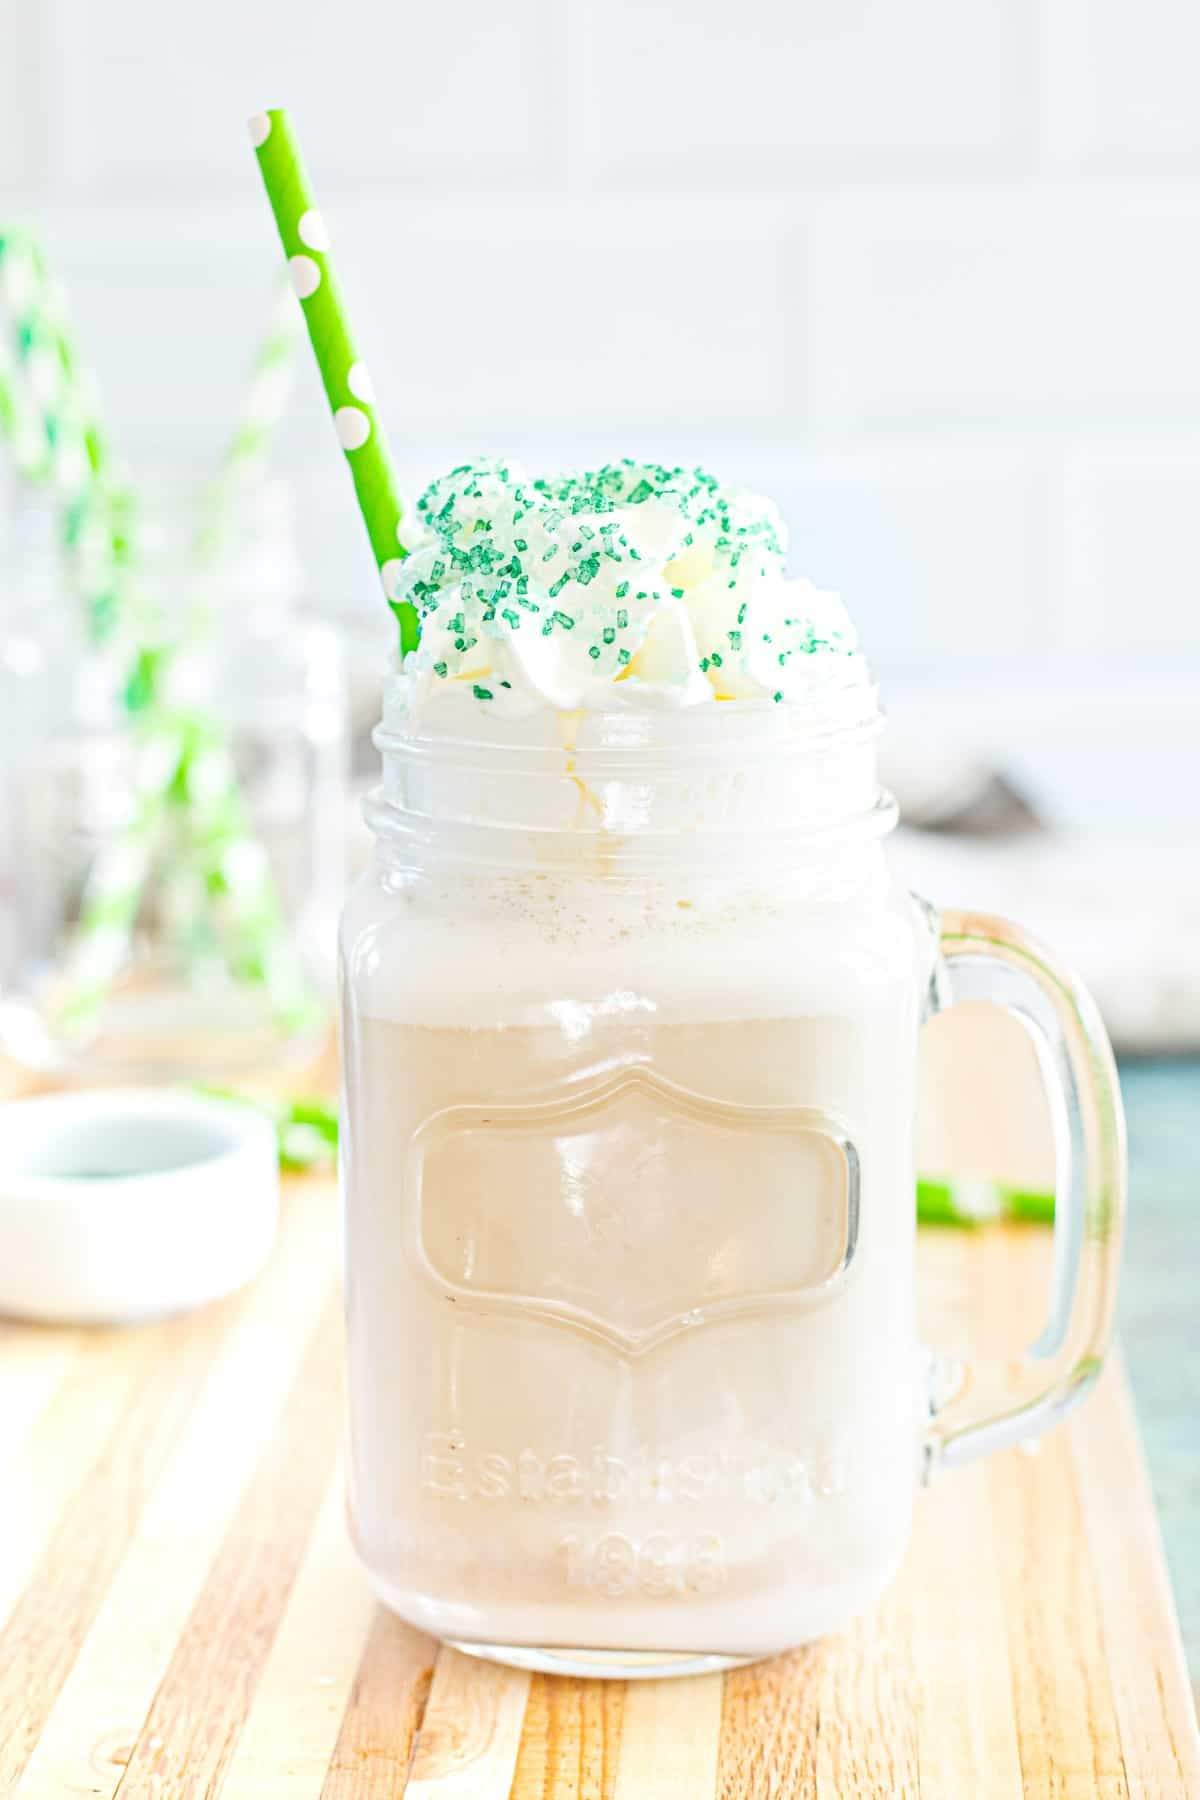 Iced coffee in a glass mug with a green straw and green sprinkles on whipped cream